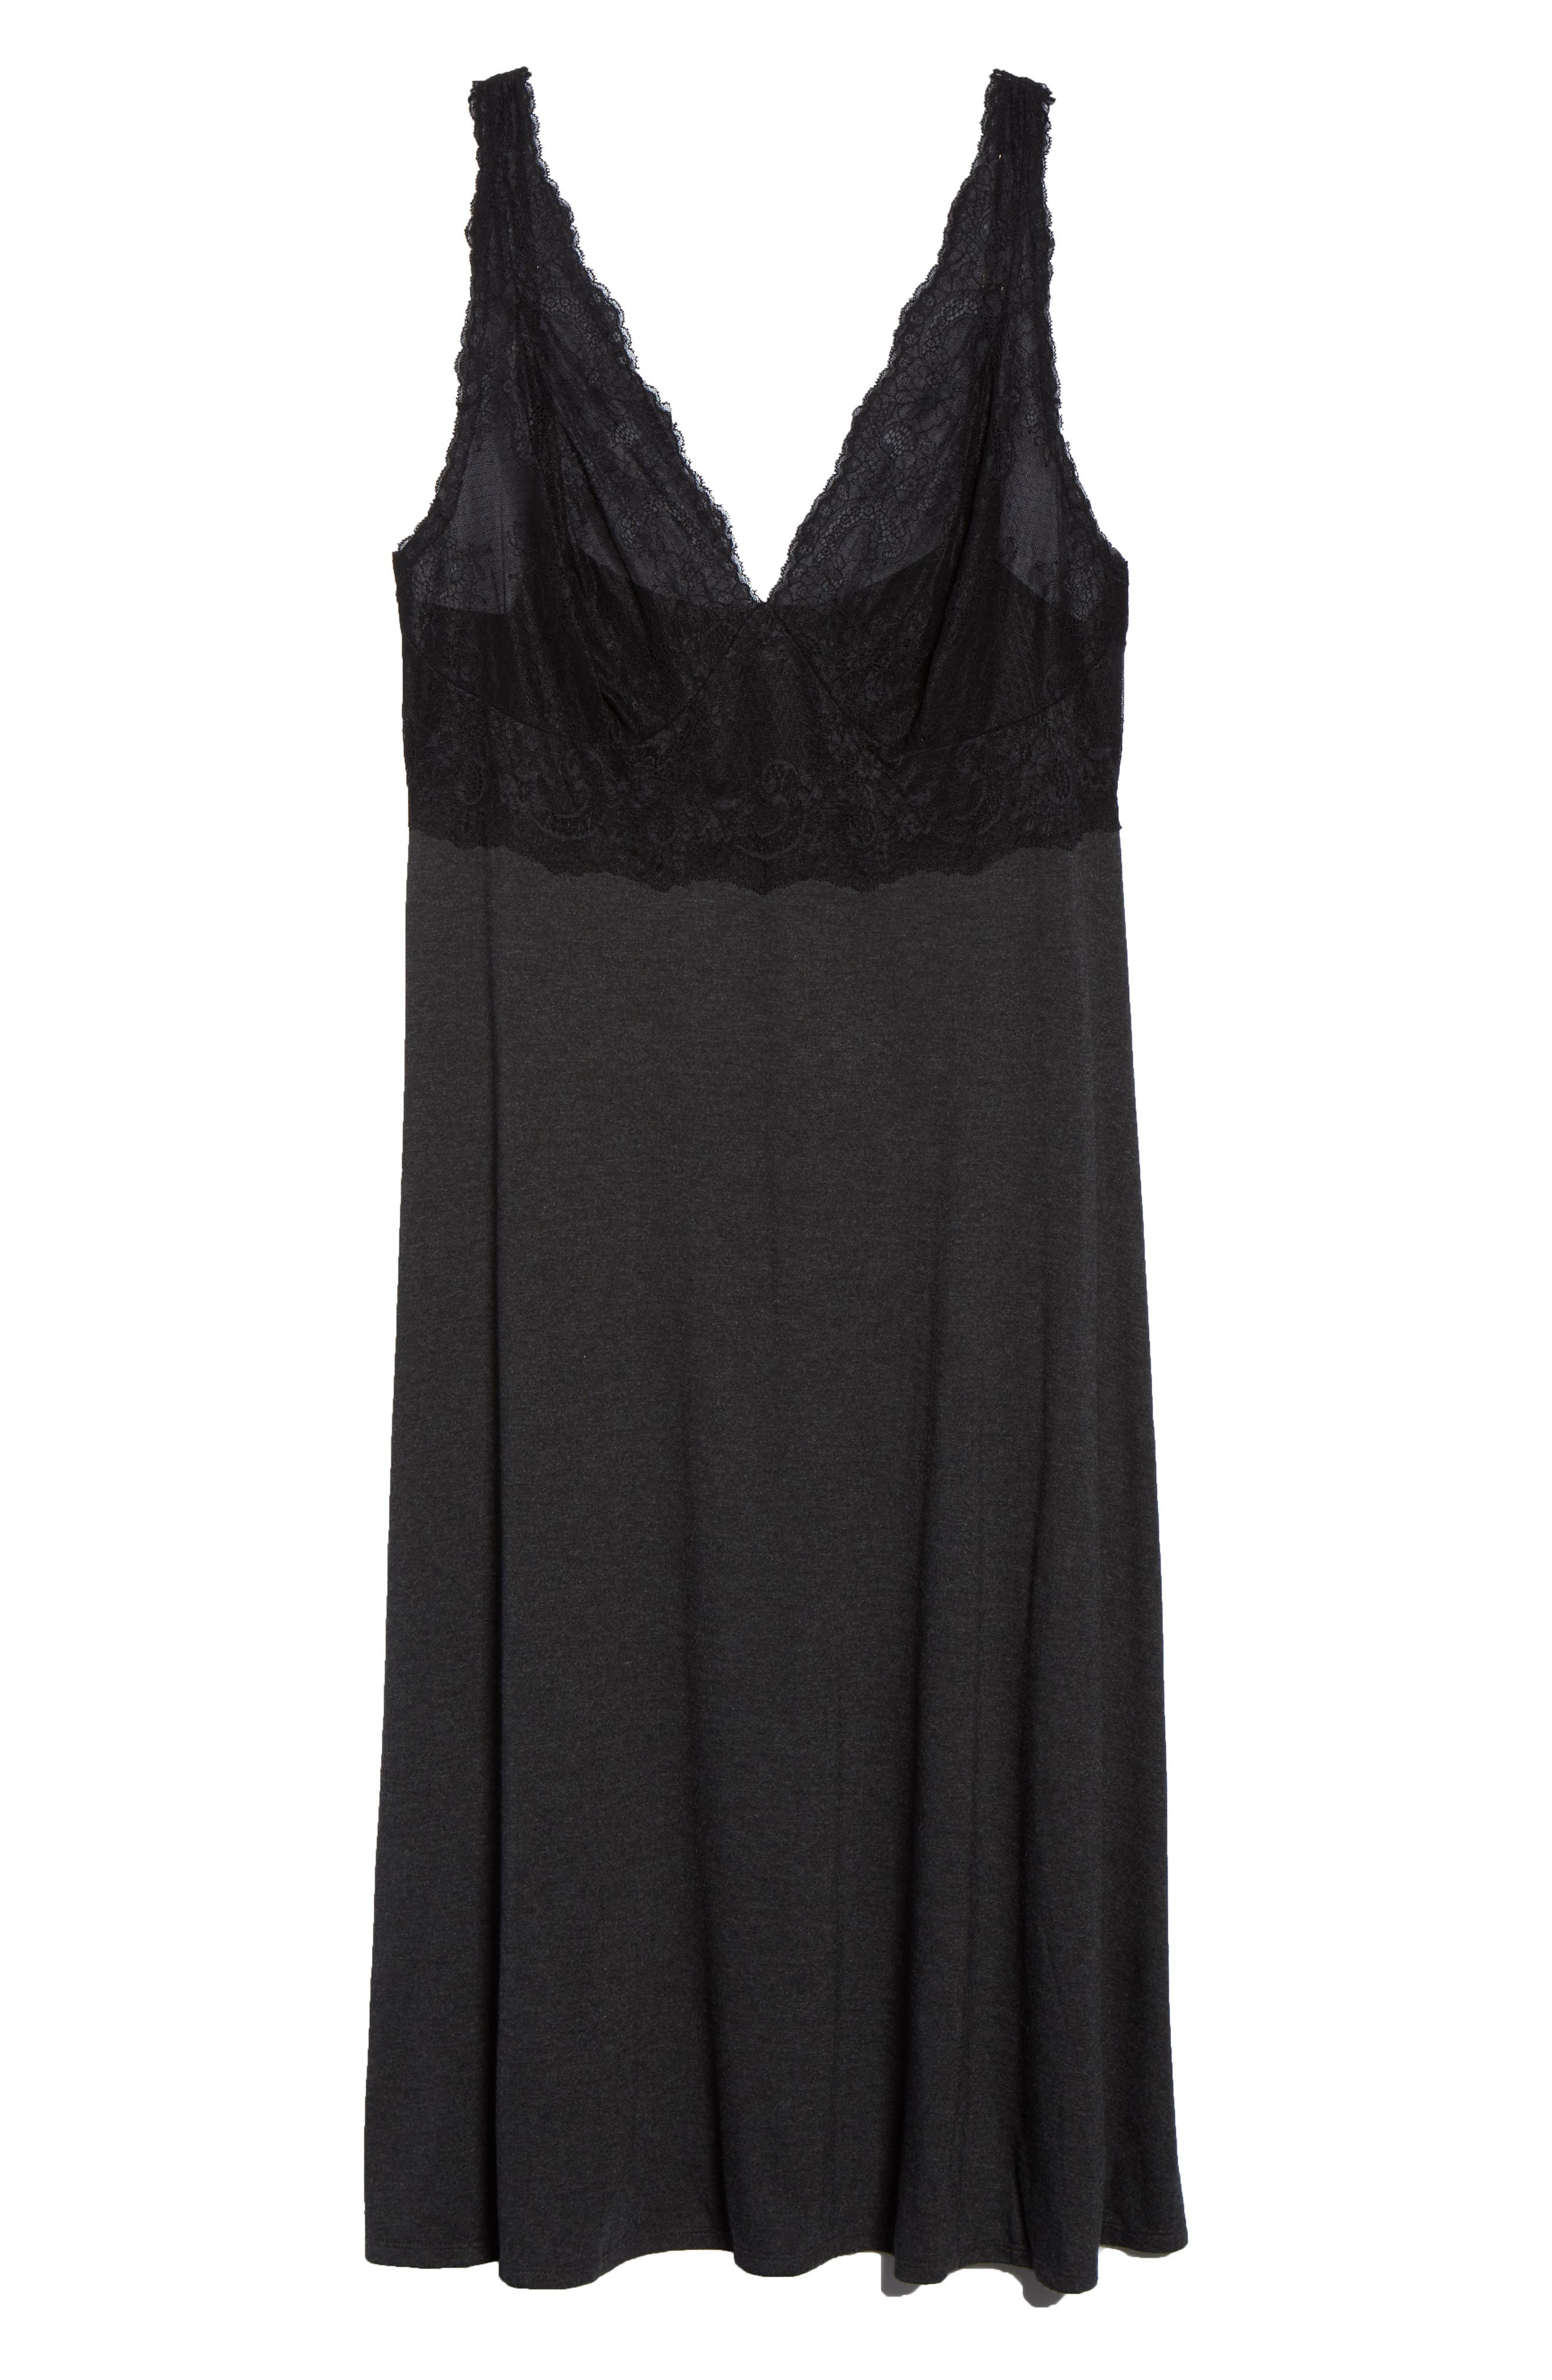 Luxe Shangri-La Nightgown,                             Alternate thumbnail 6, color,                             GREY WITH BLACK